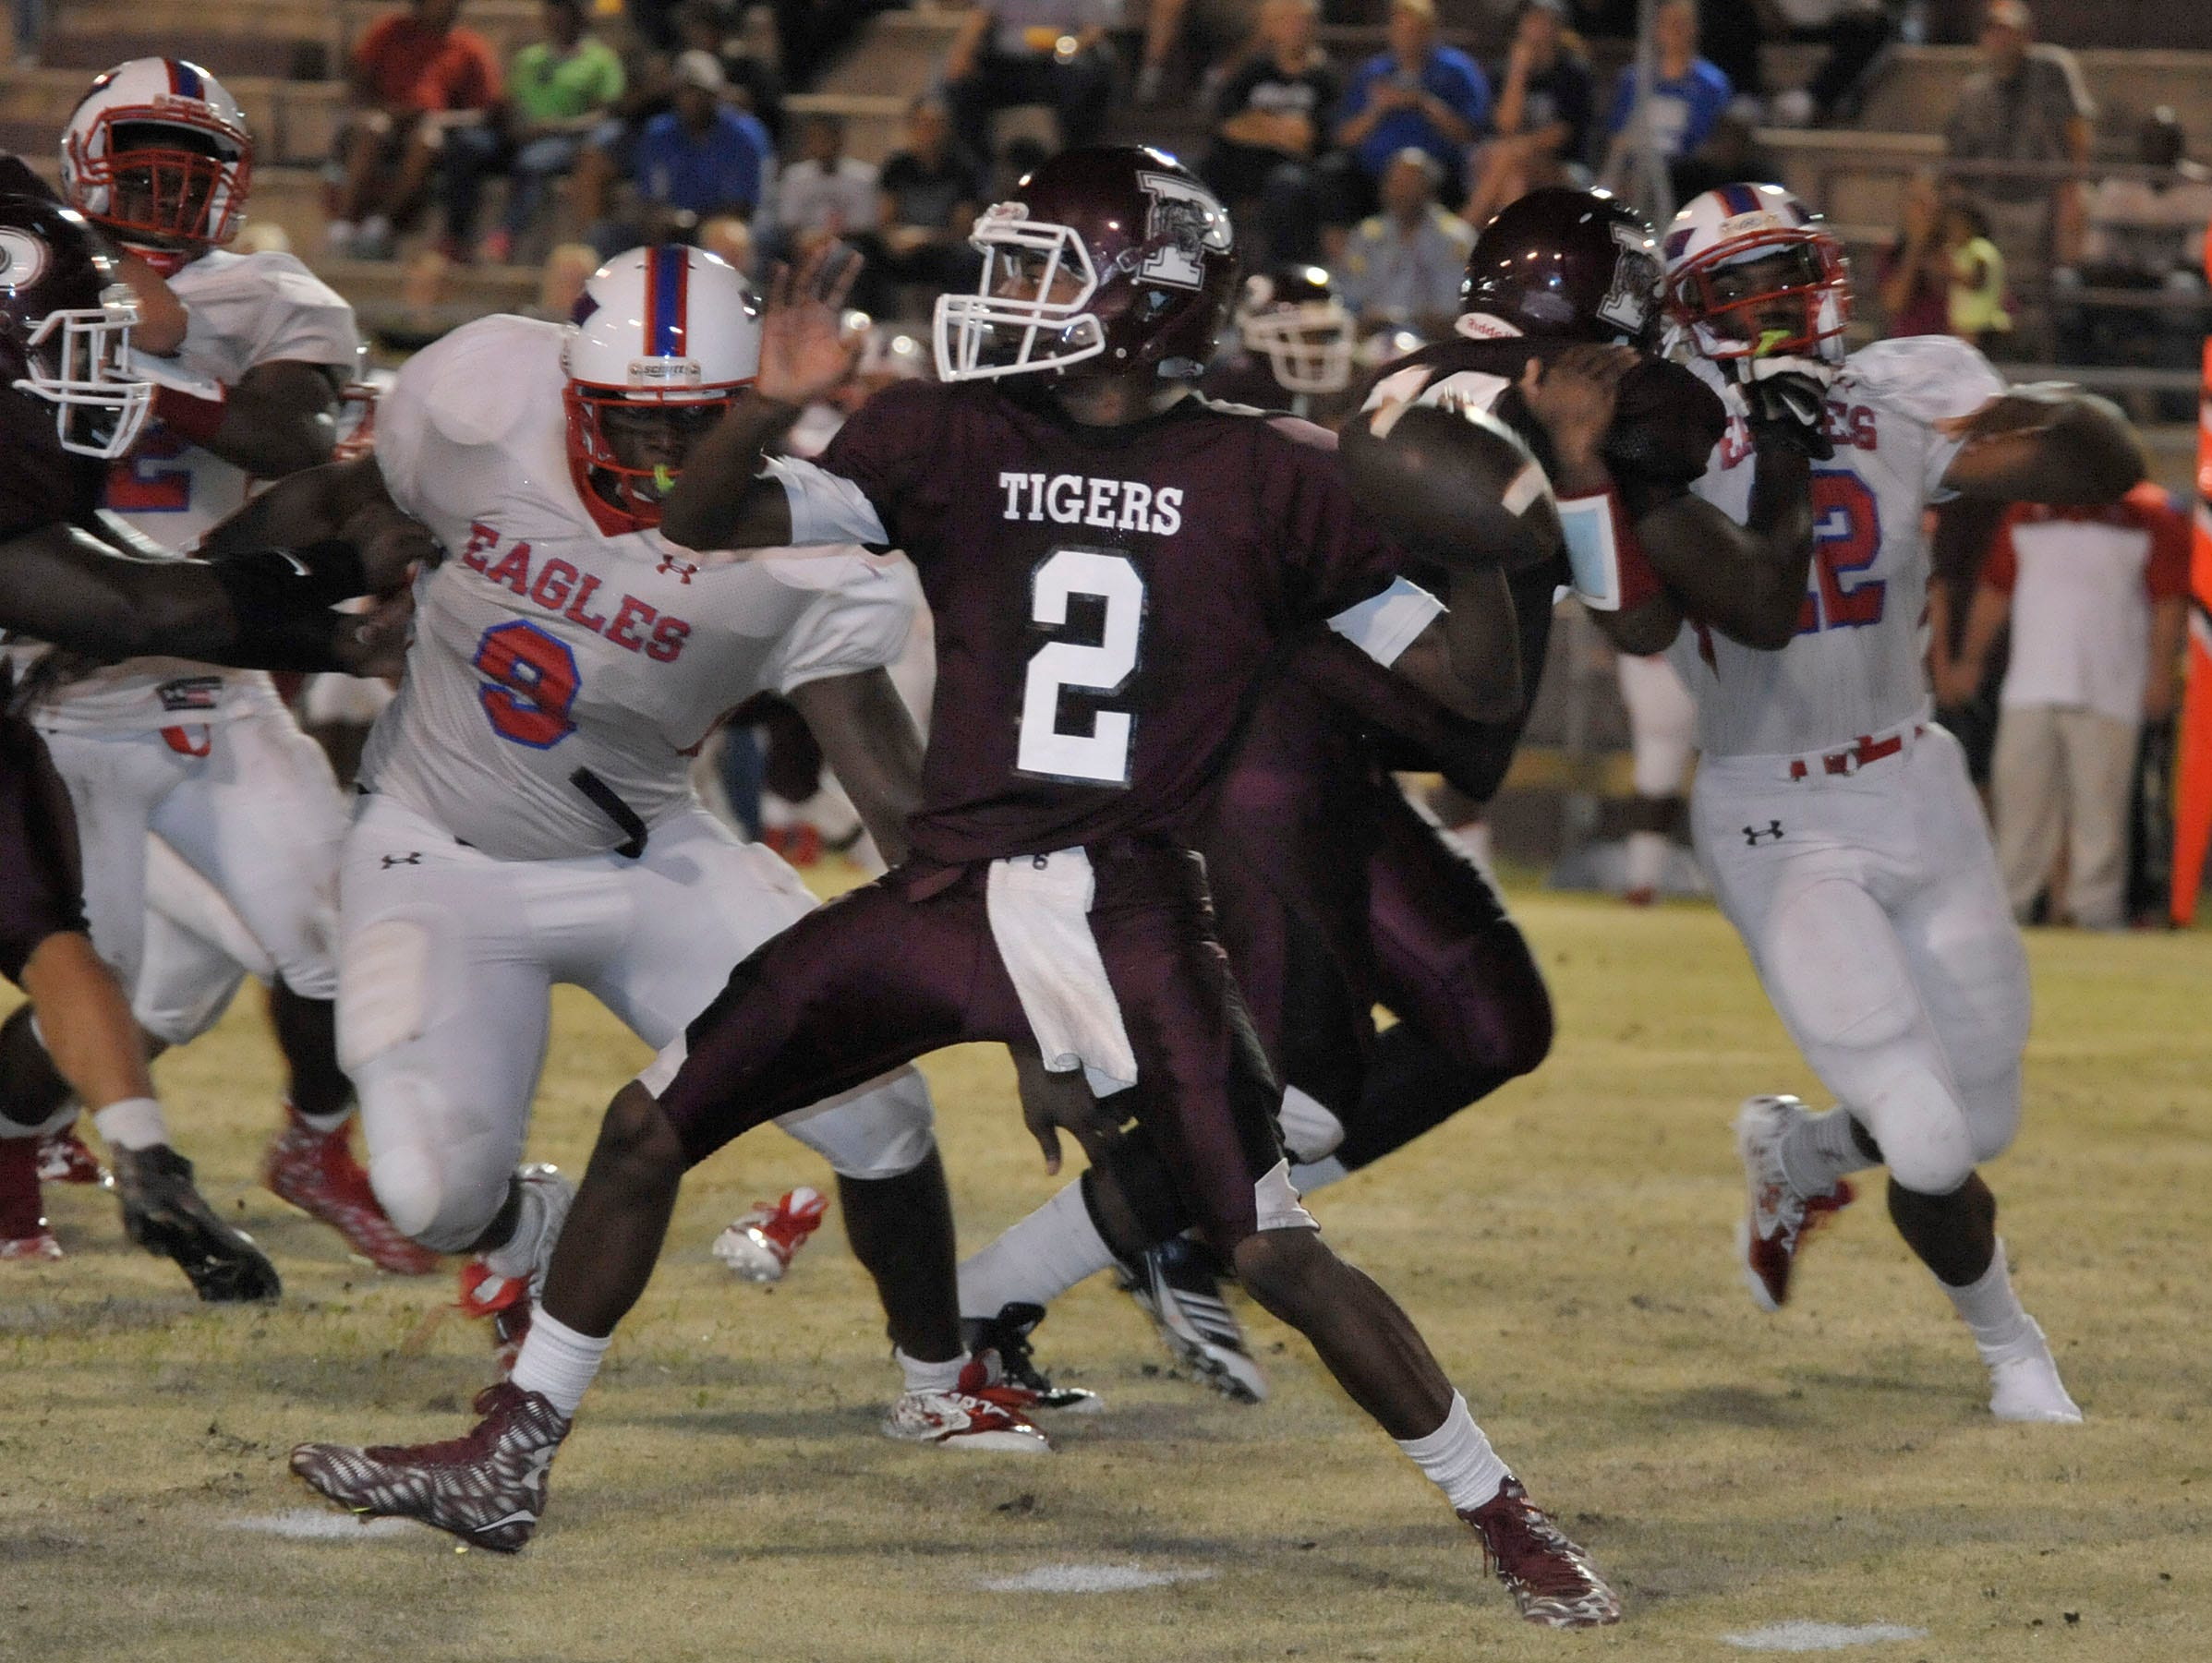 Pensacola High Tigers QB, Sederick Smith, throws under pressure from the Pine Forest Eagle defense during their game Friday night at PHS.